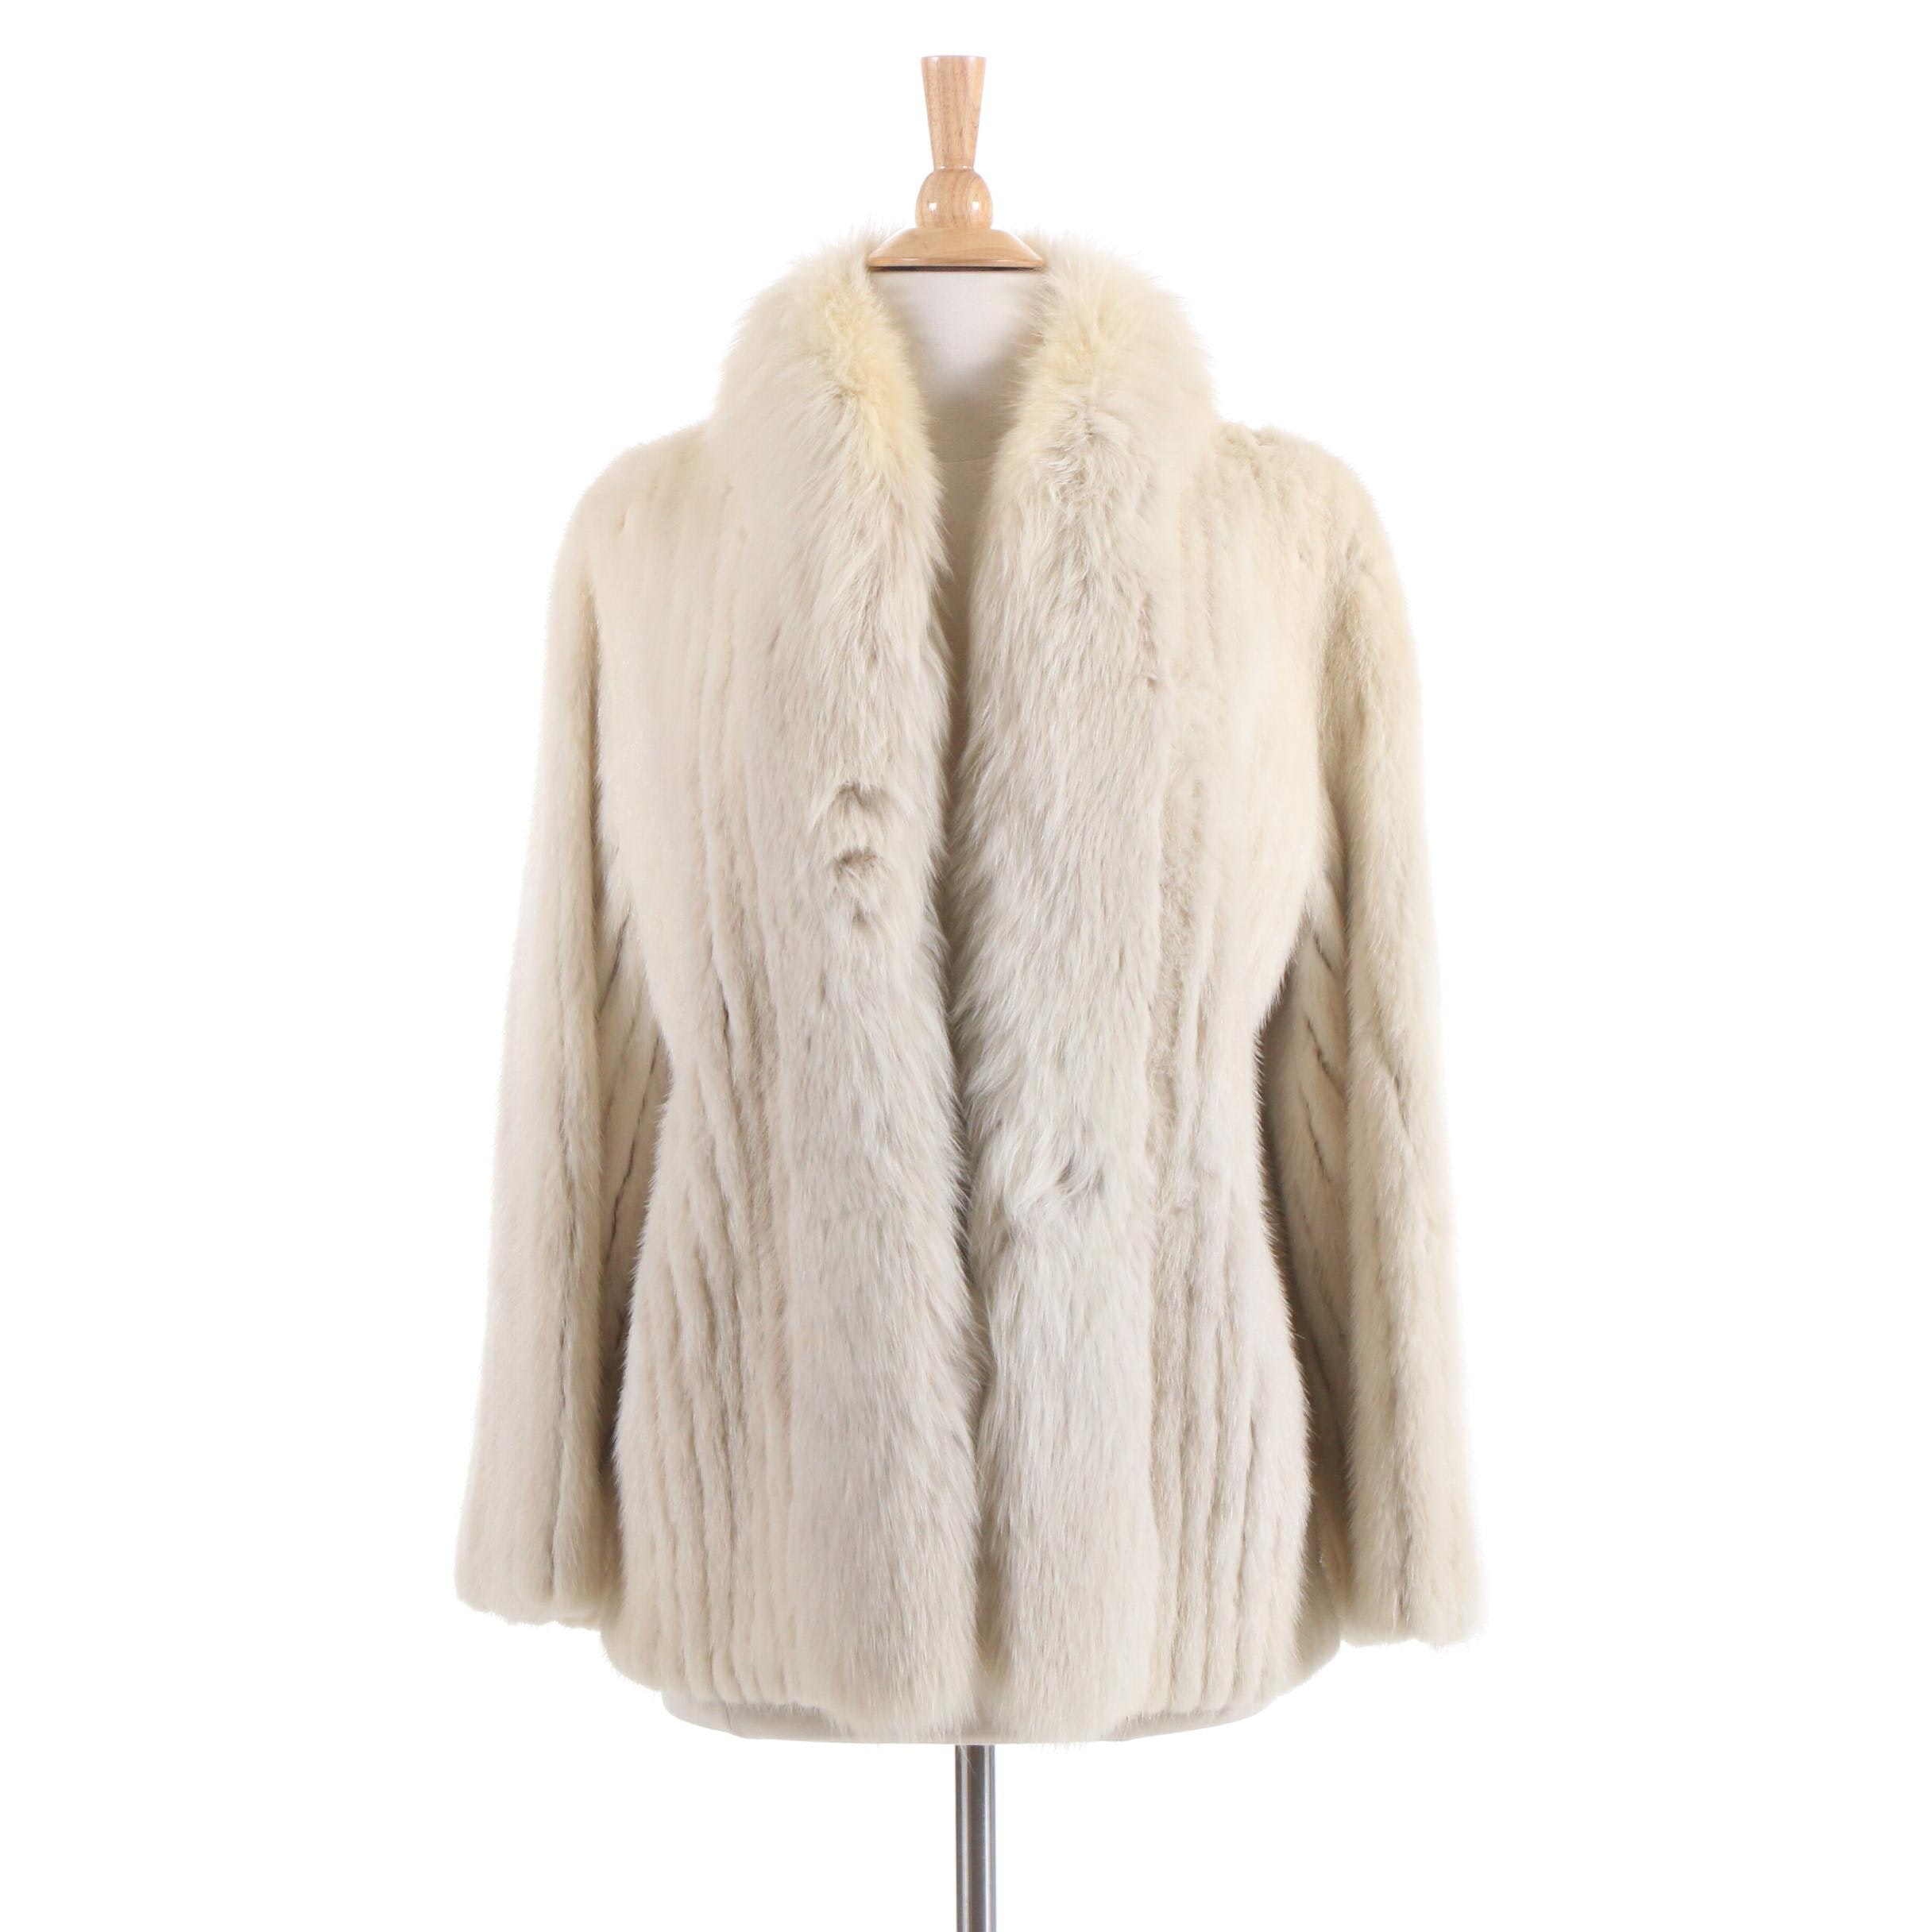 Schimmel Furs Mink Fur Coat with Fox Fur Tuxedo Collar, Vintage